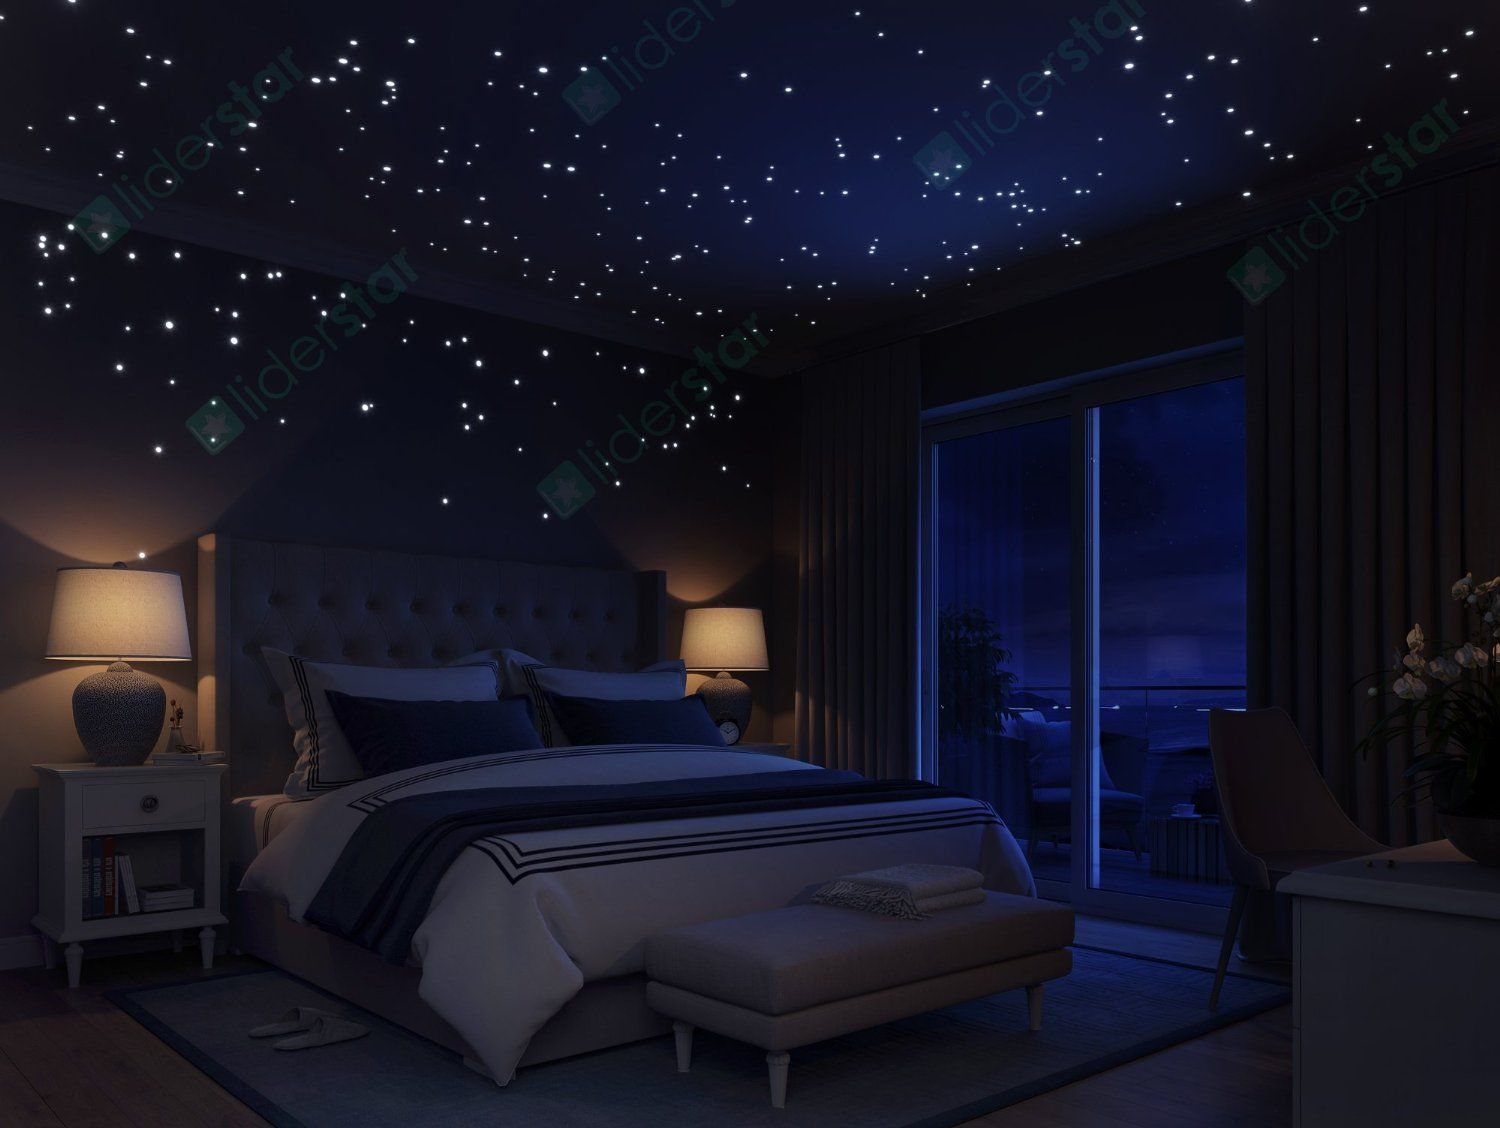 Girls Wallpaper Decals With Eiffel Tower Glow In The Dark Stars Wall Stickers 252 Dots And Moon